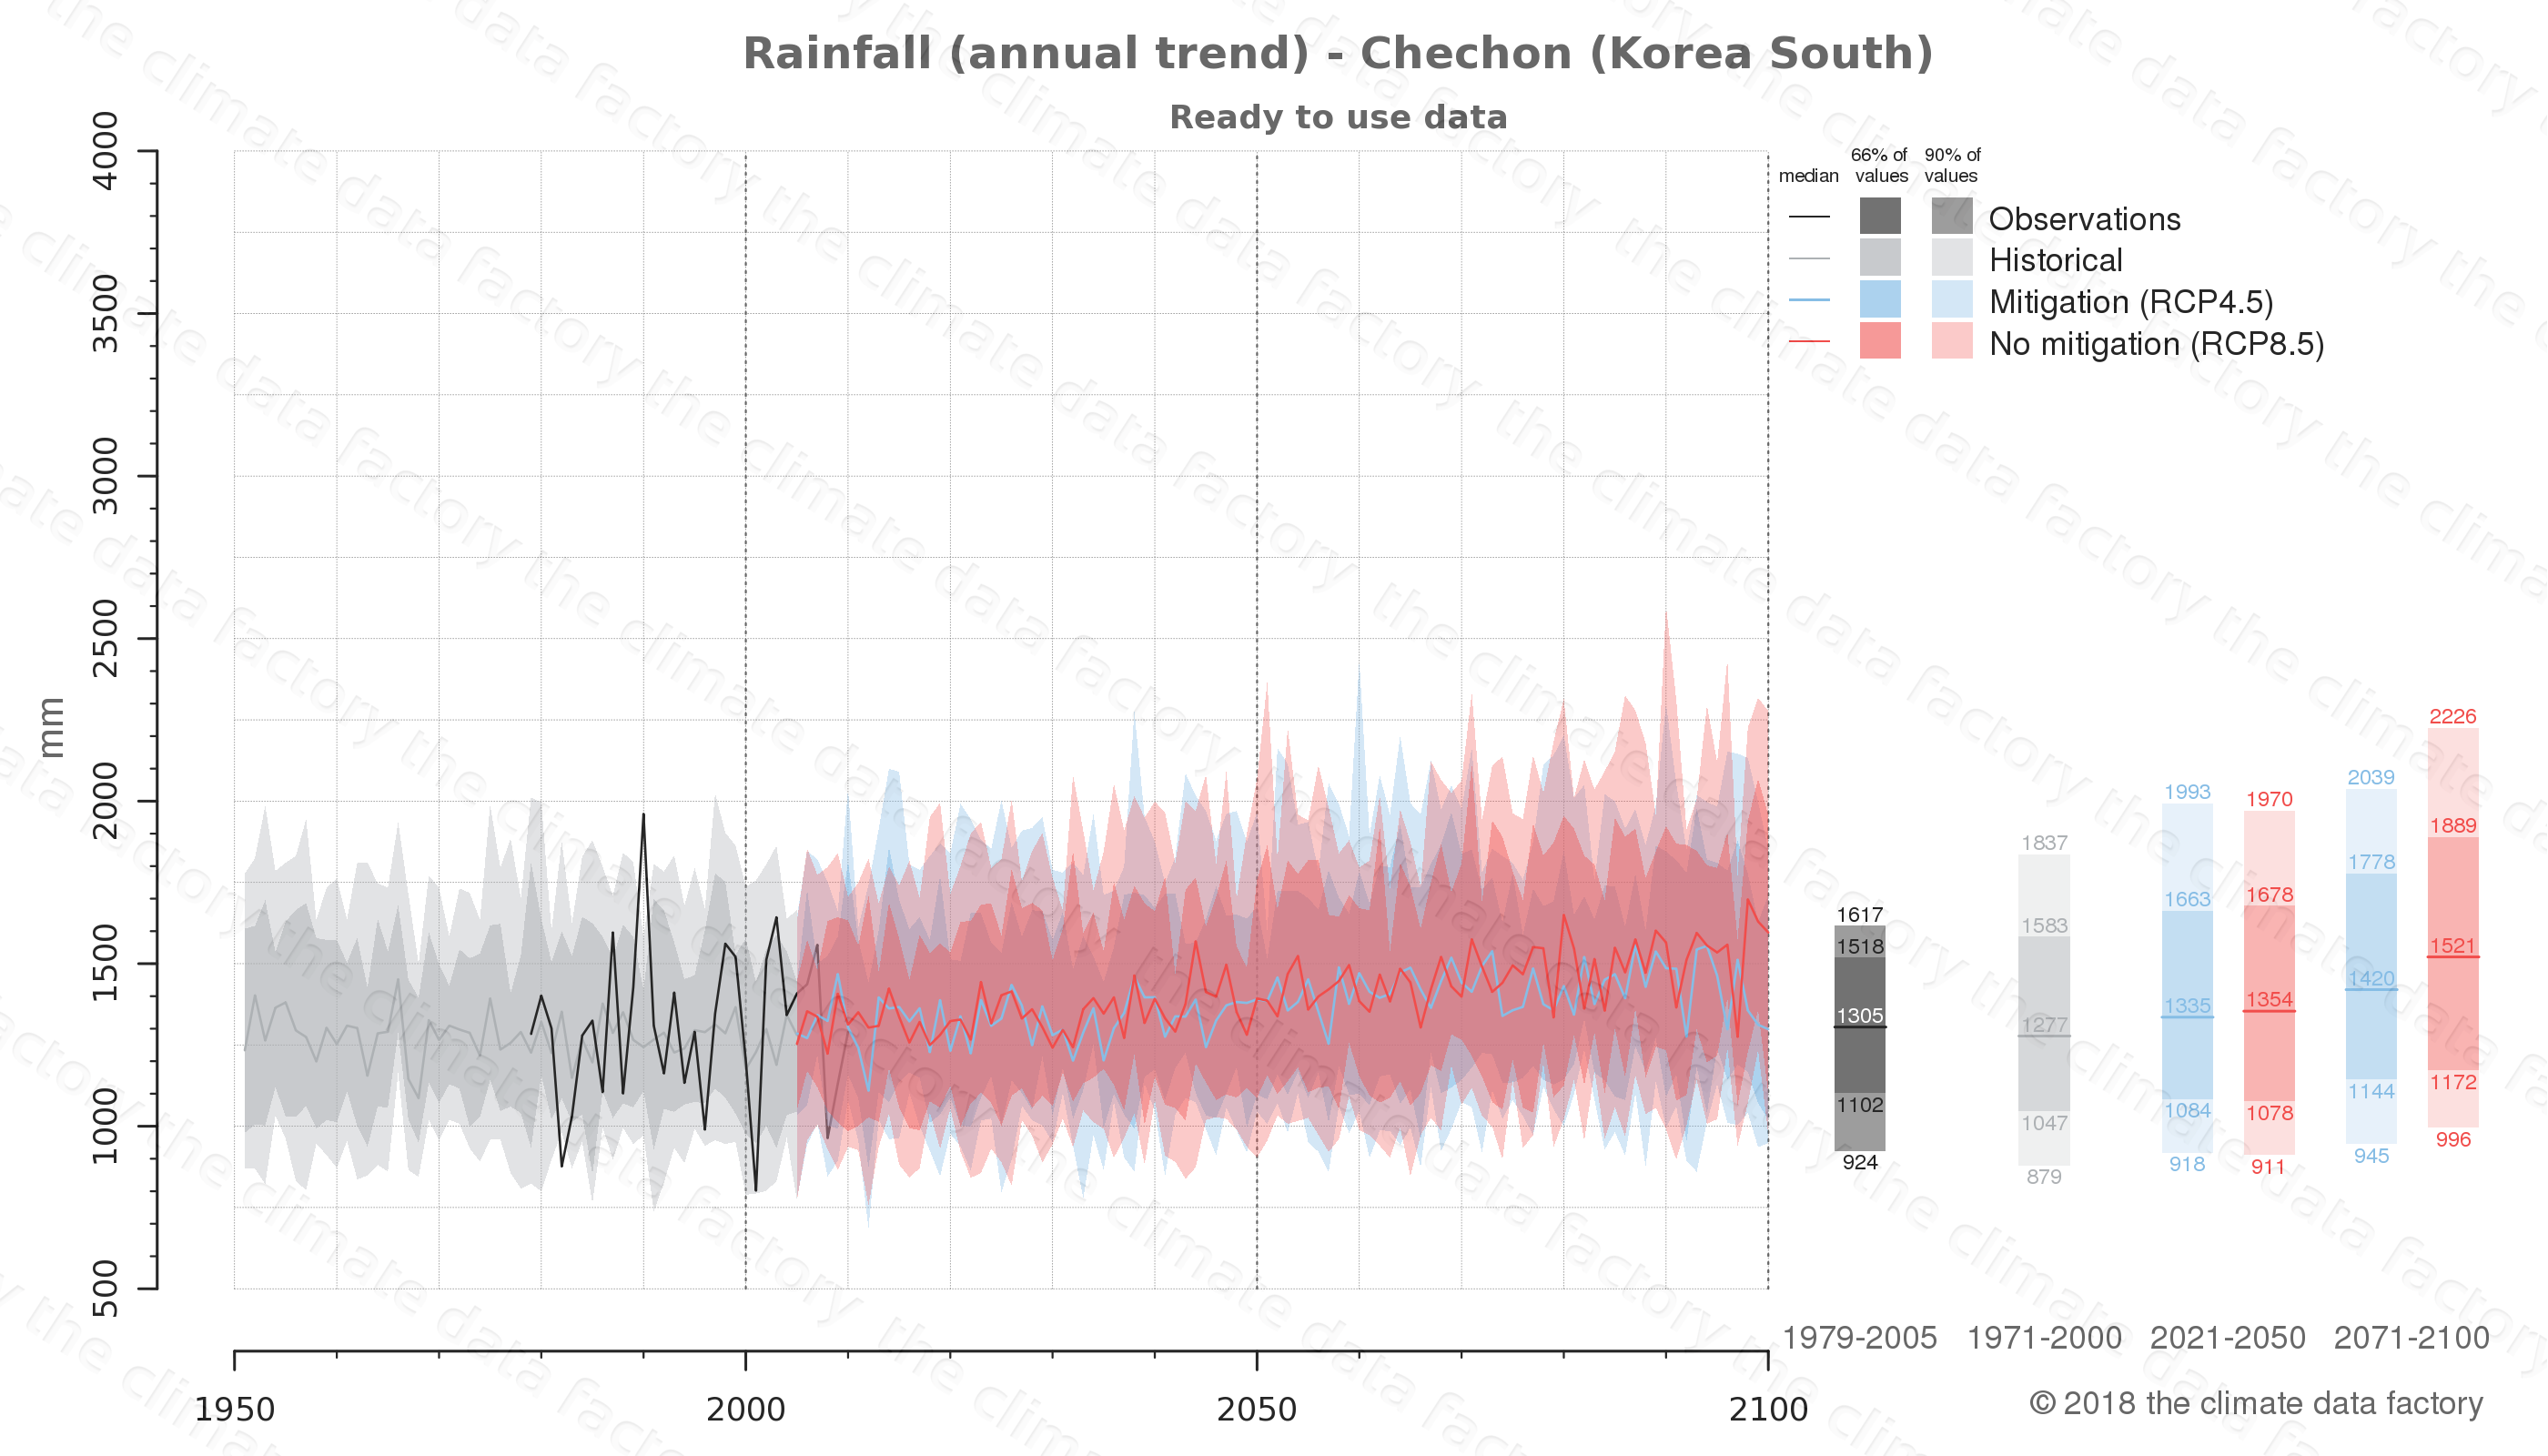 climate change data policy adaptation climate graph city data rainfall chechon south korea